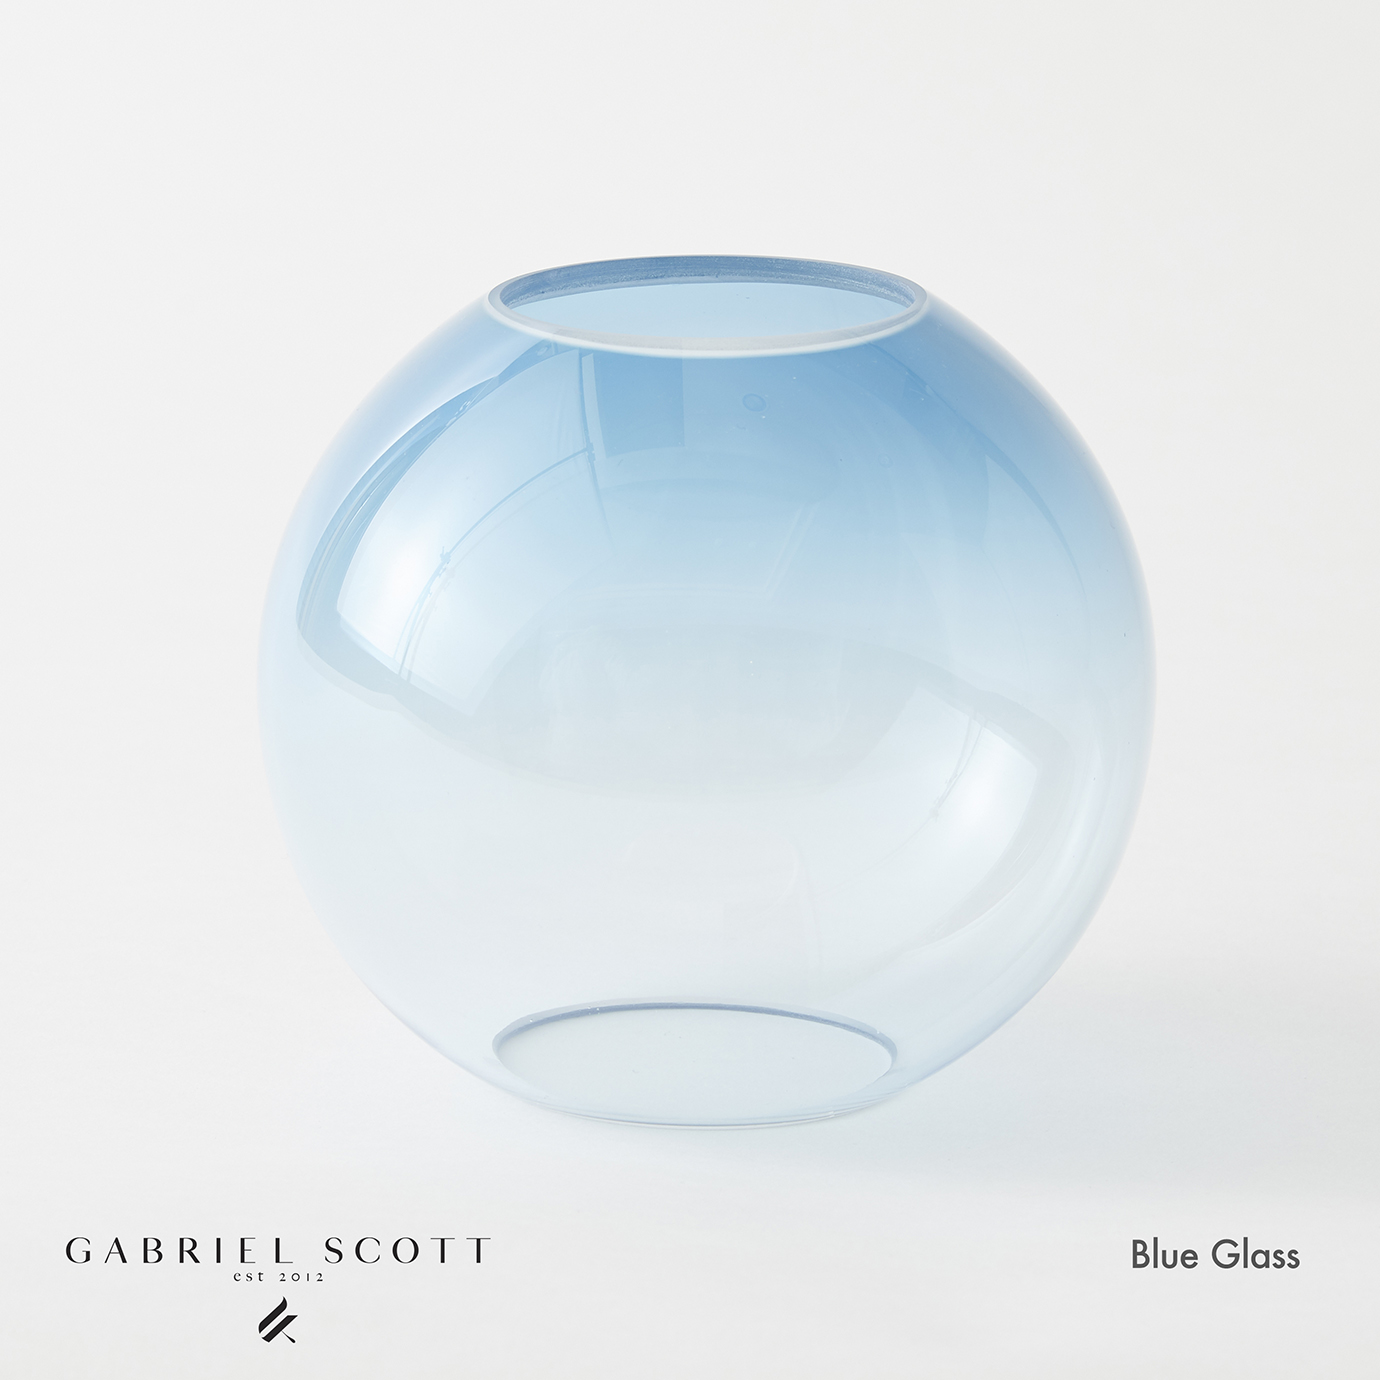 Blue Glass - GABRIEL SCOTT.jpg